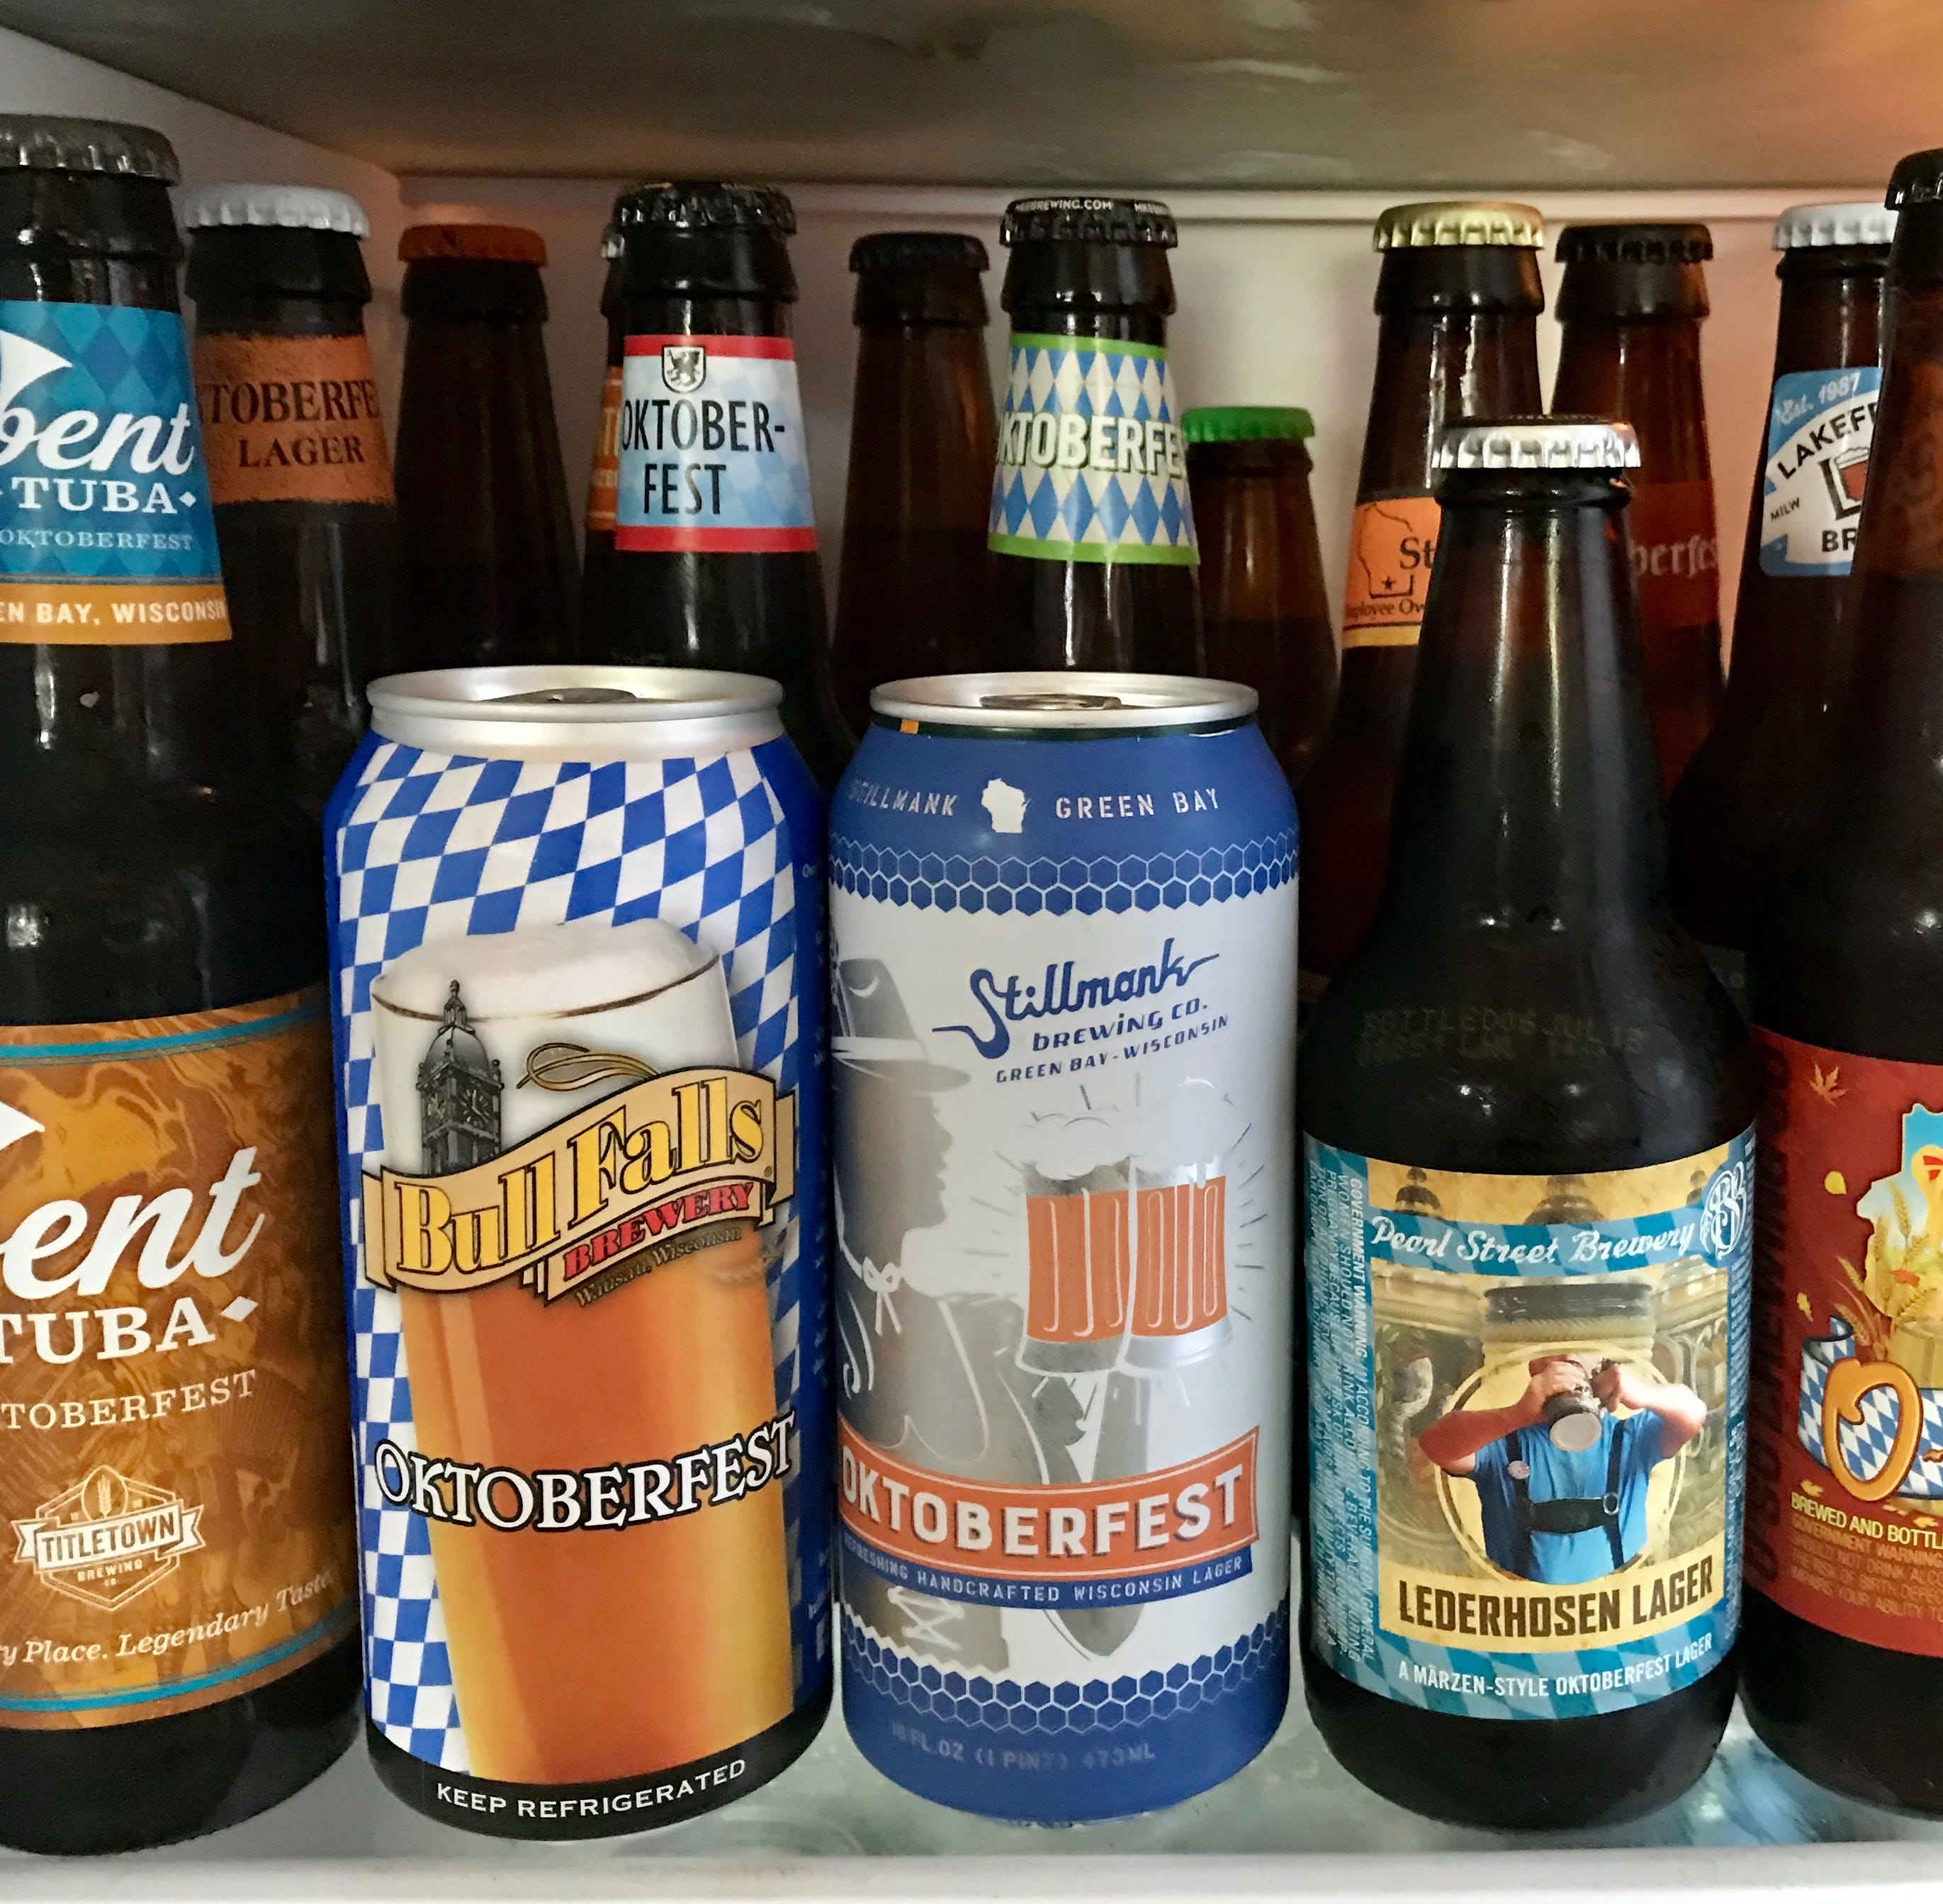 We did a blind taste test of 18 Wisconsin-brewed Oktoberfest beers. Here's what stood out.